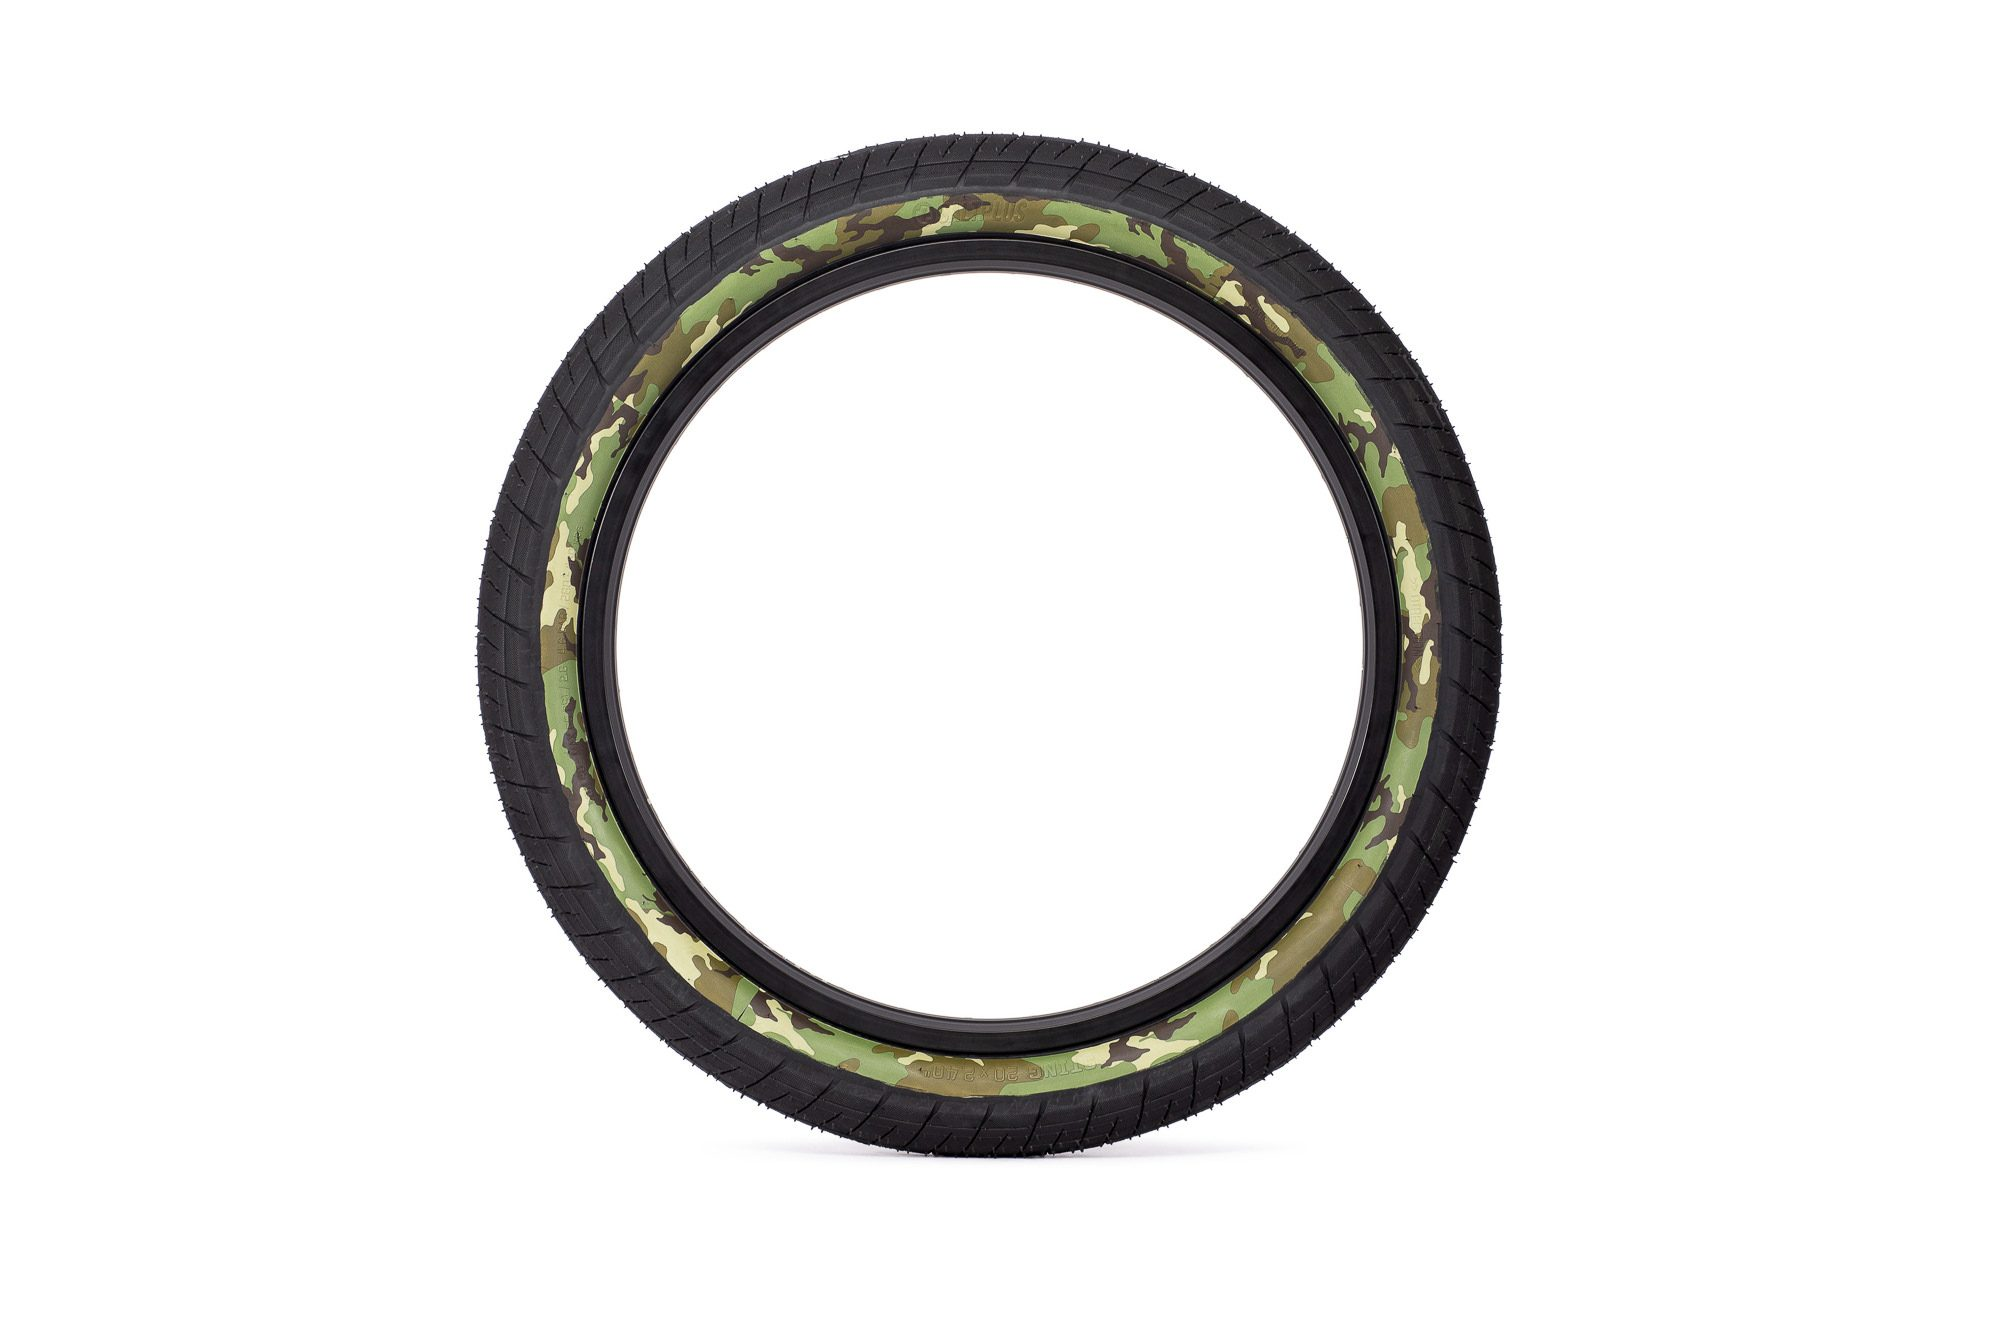 SaltPlus_Sting_tire_black_camo-01